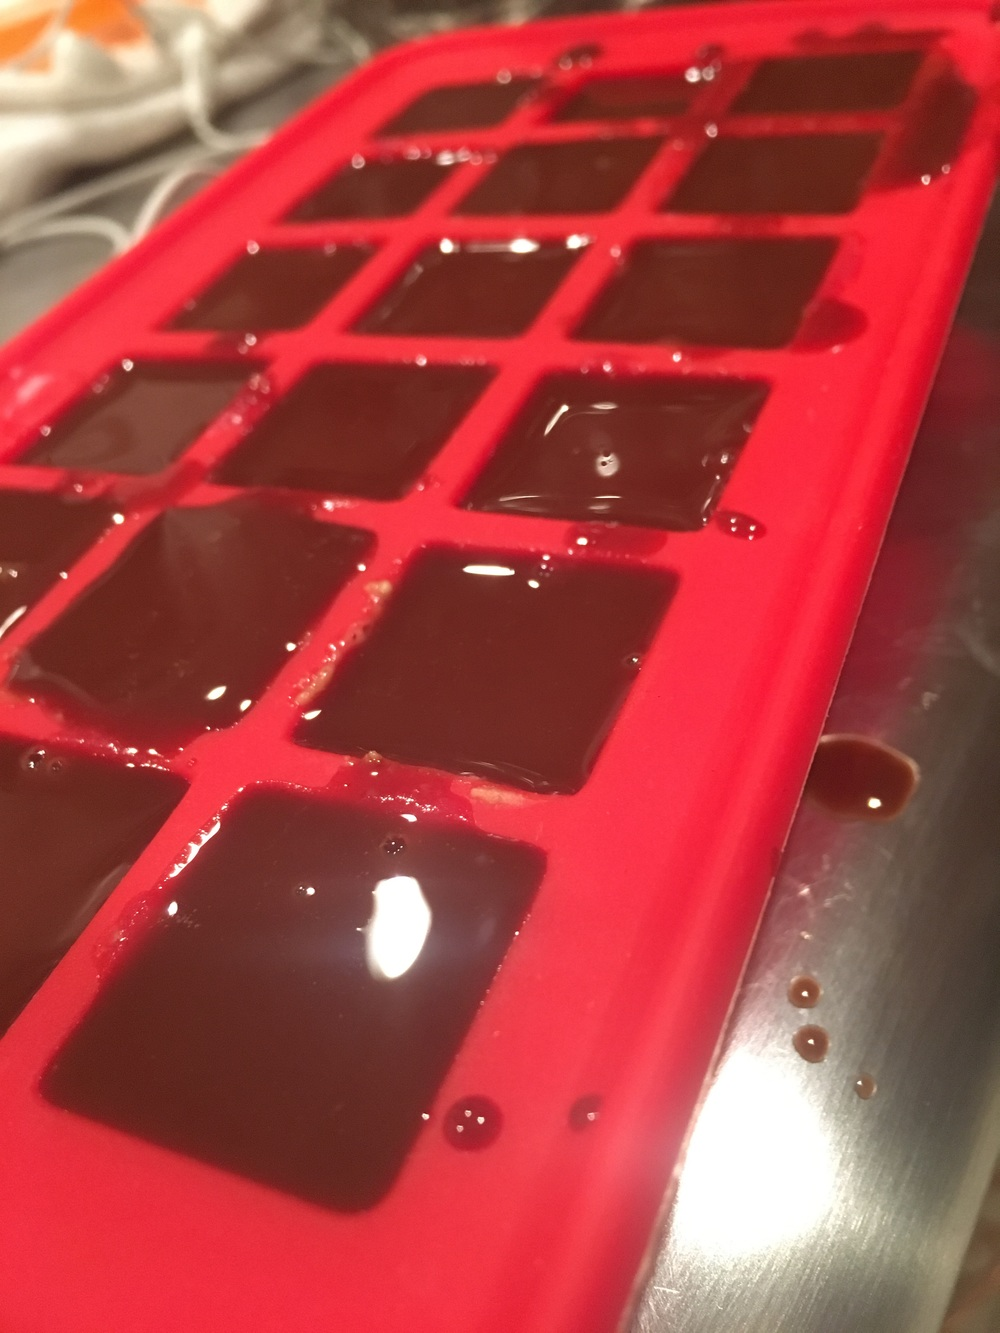 Silicon Ice Cube Tray with All Layers